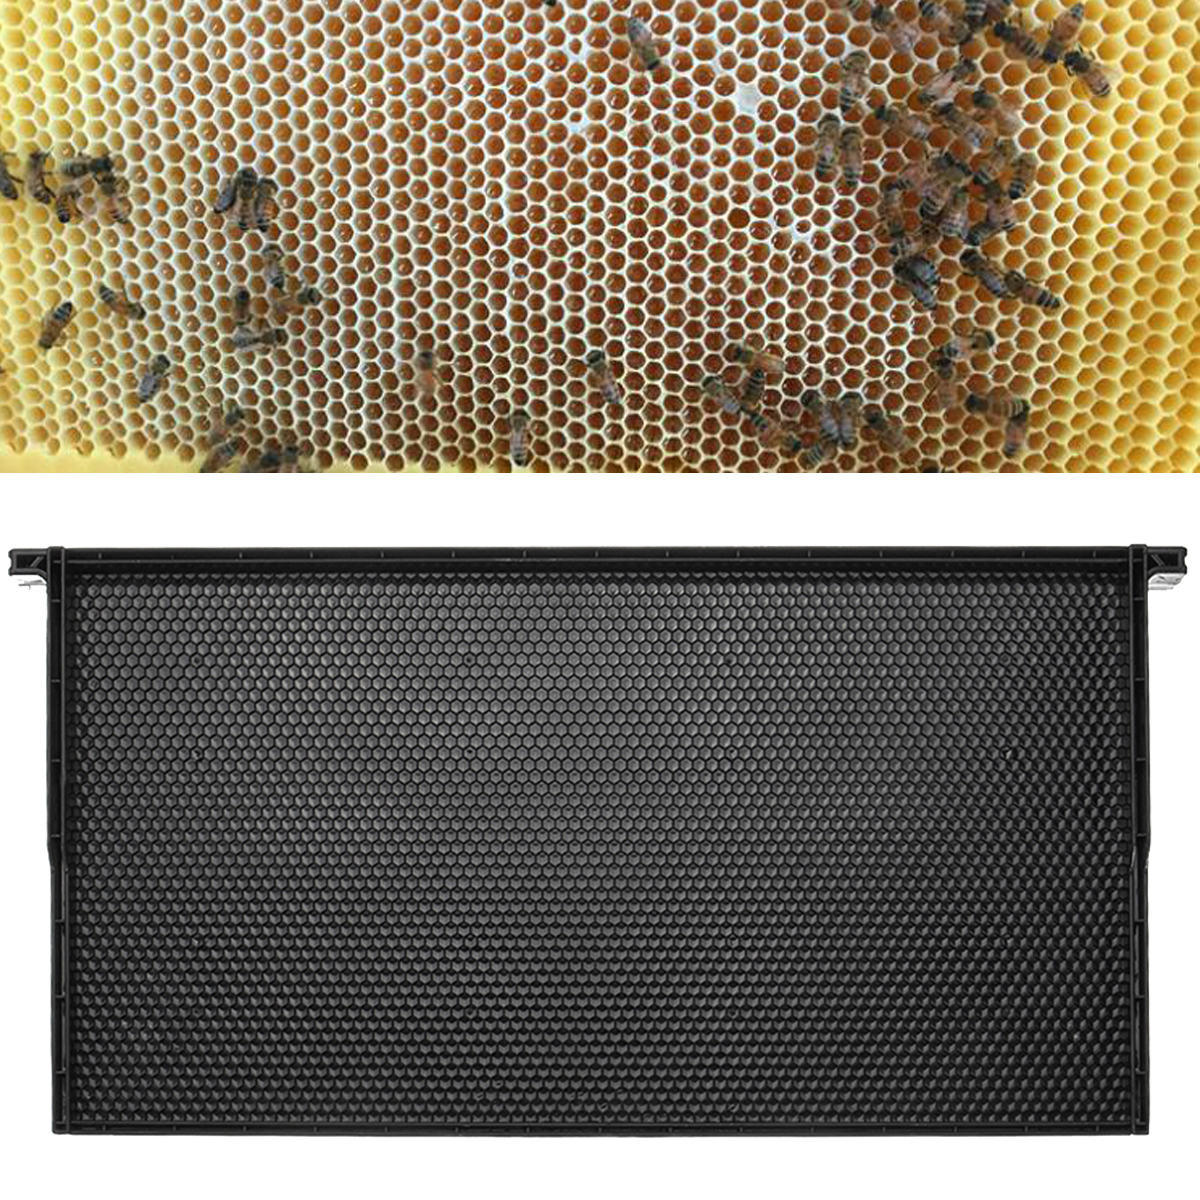 Plastic Comb Wax Foundation Comb Beehive Frames Honey Bee Beekeeping Hive Tools